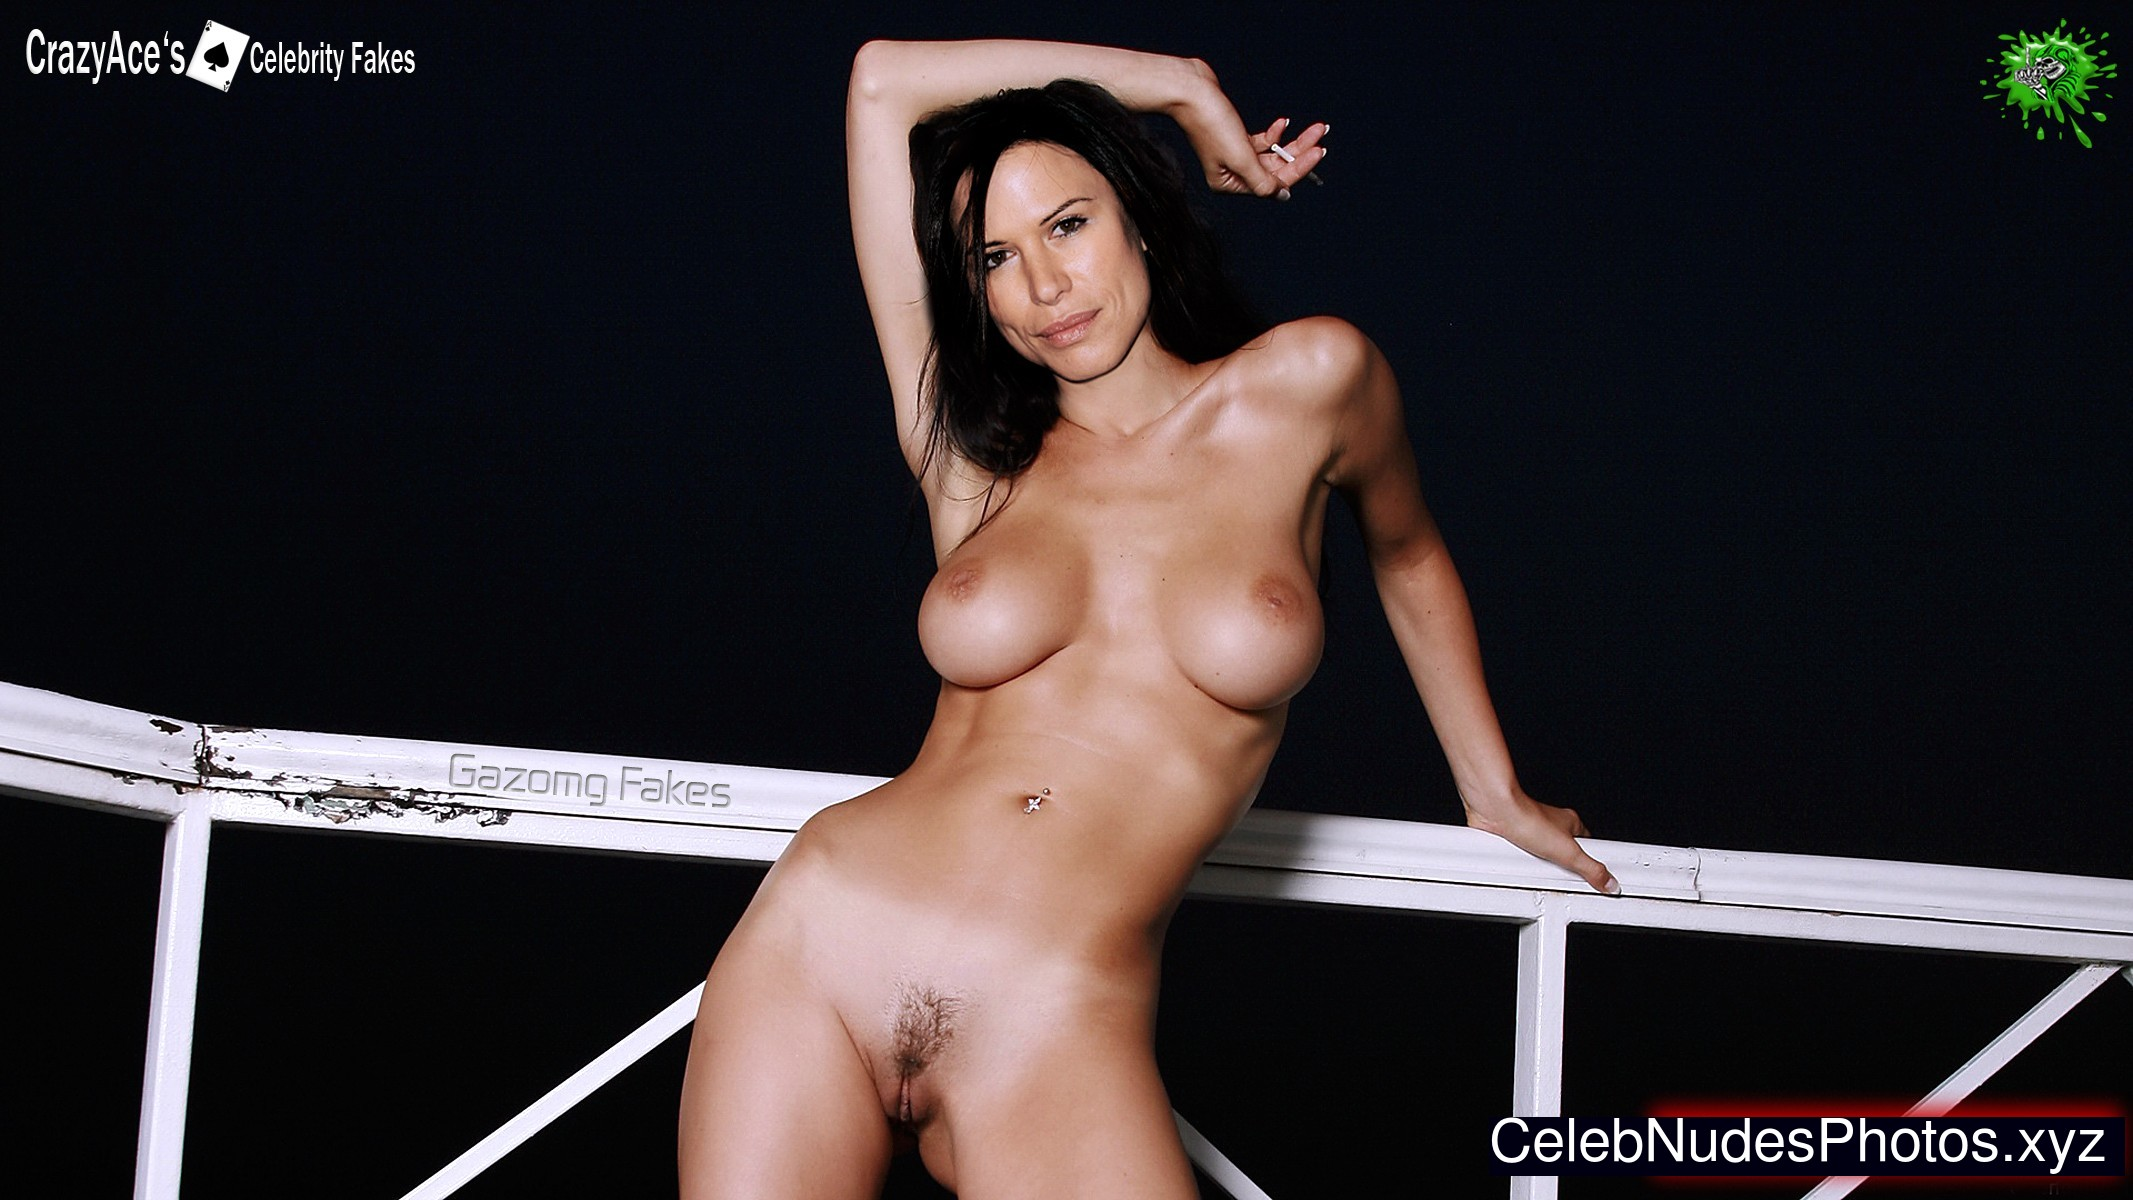 rhona mitra naked pictures